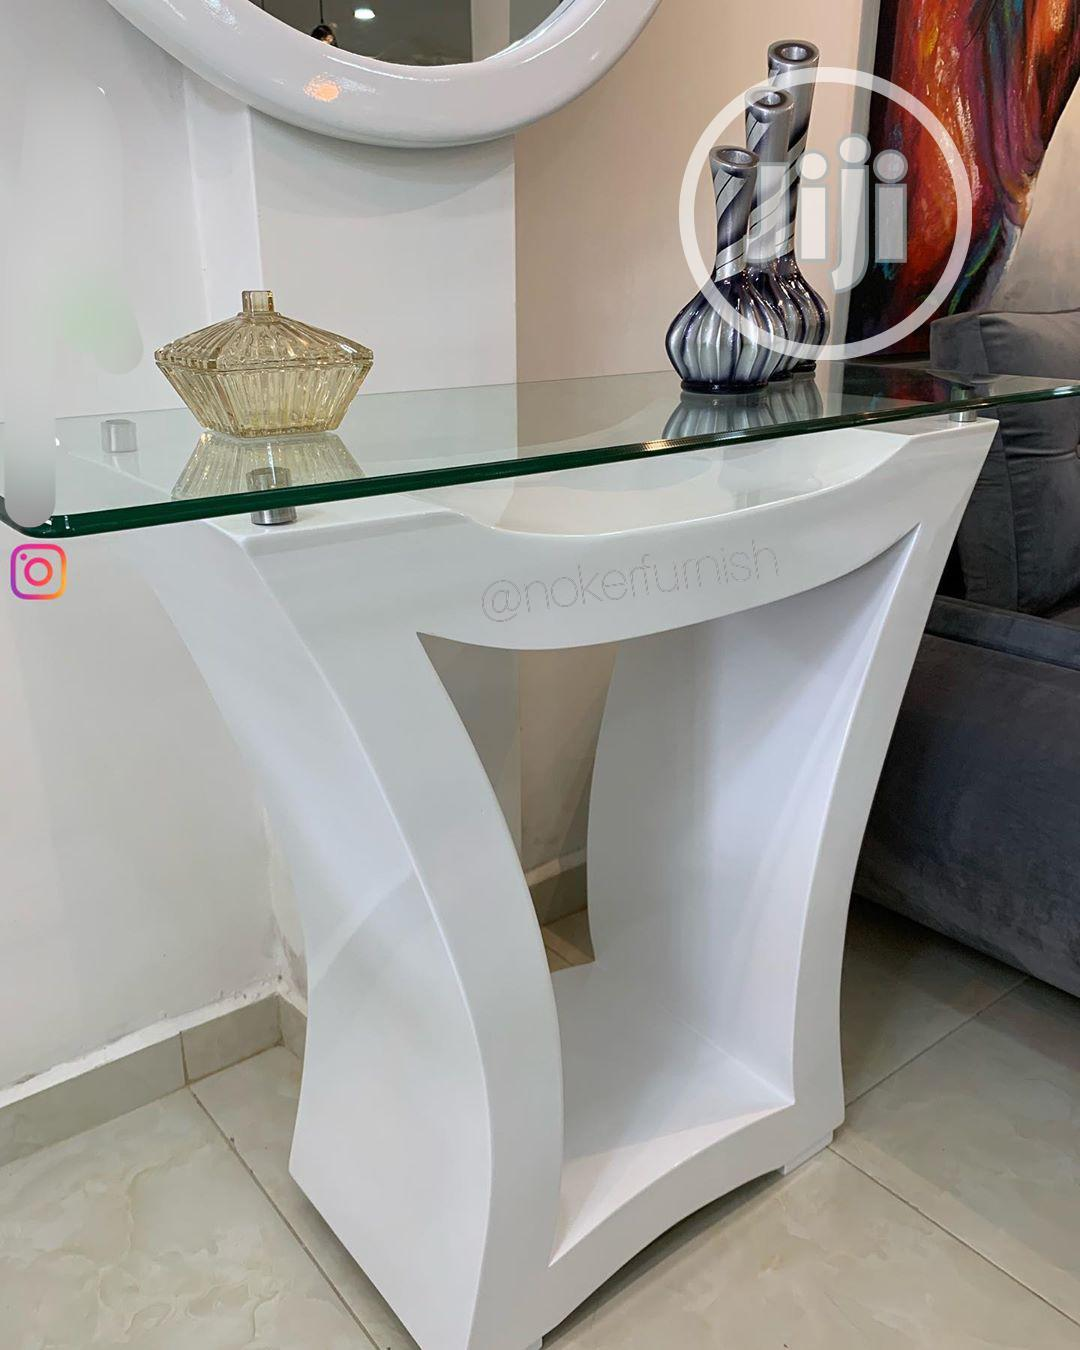 Govalex Console Table With Round Mirror   Home Accessories for sale in Ajah, Lagos State, Nigeria